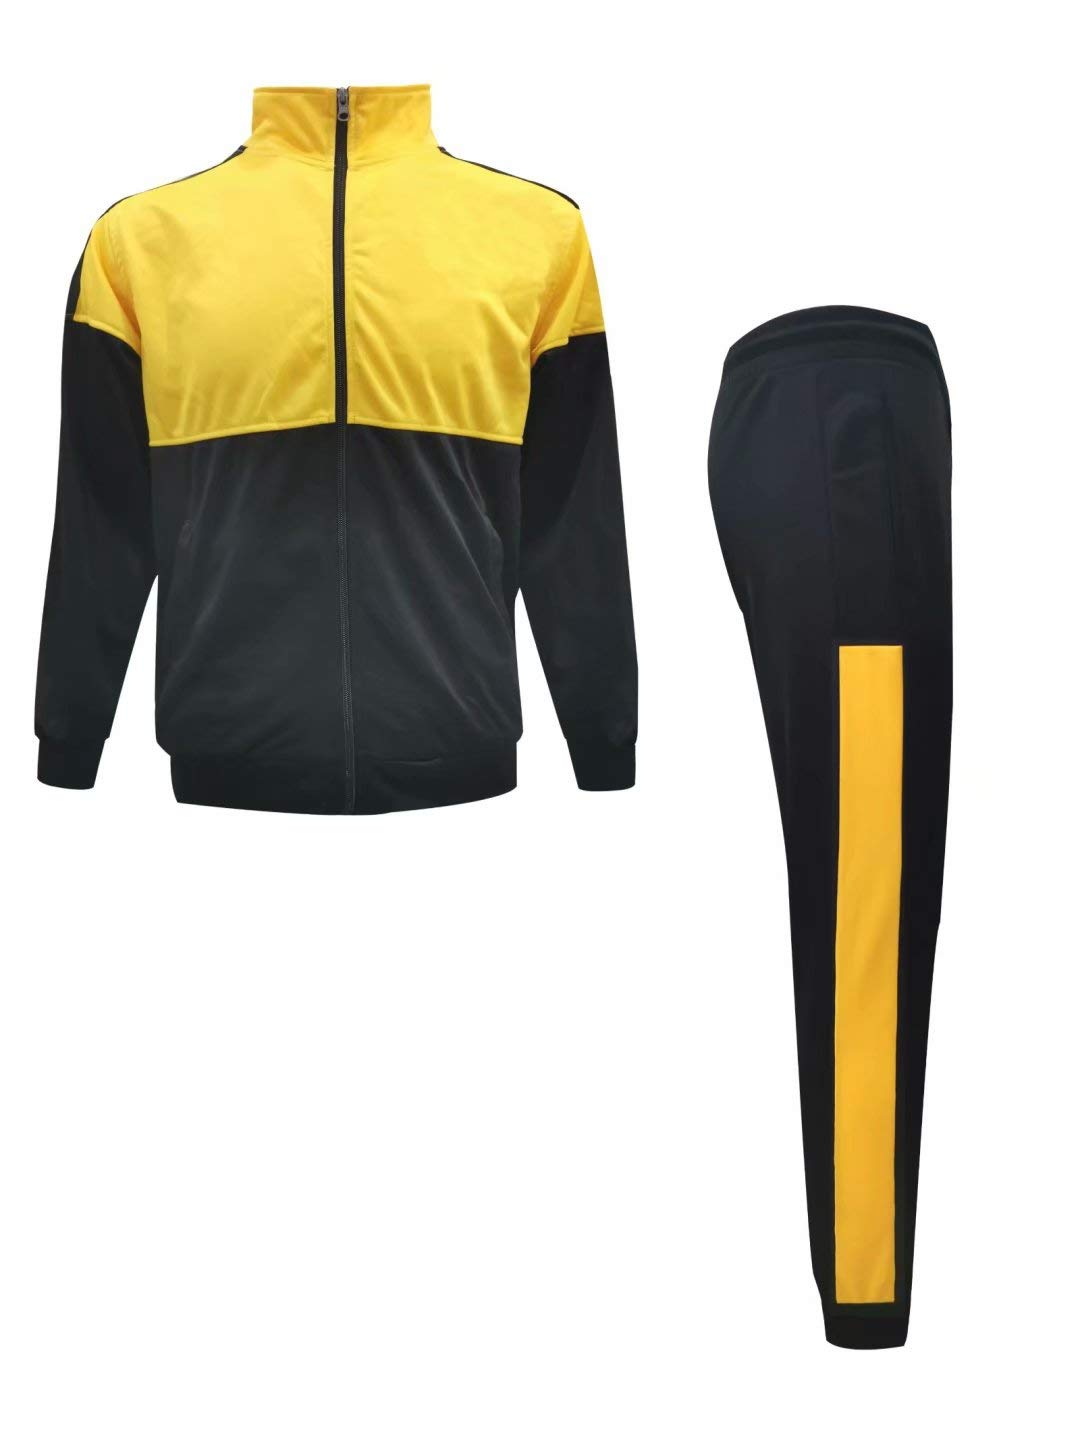 Men's Athletic Casual Pant and Jacket Sweatsuit Set Black/Yellow by URBEX